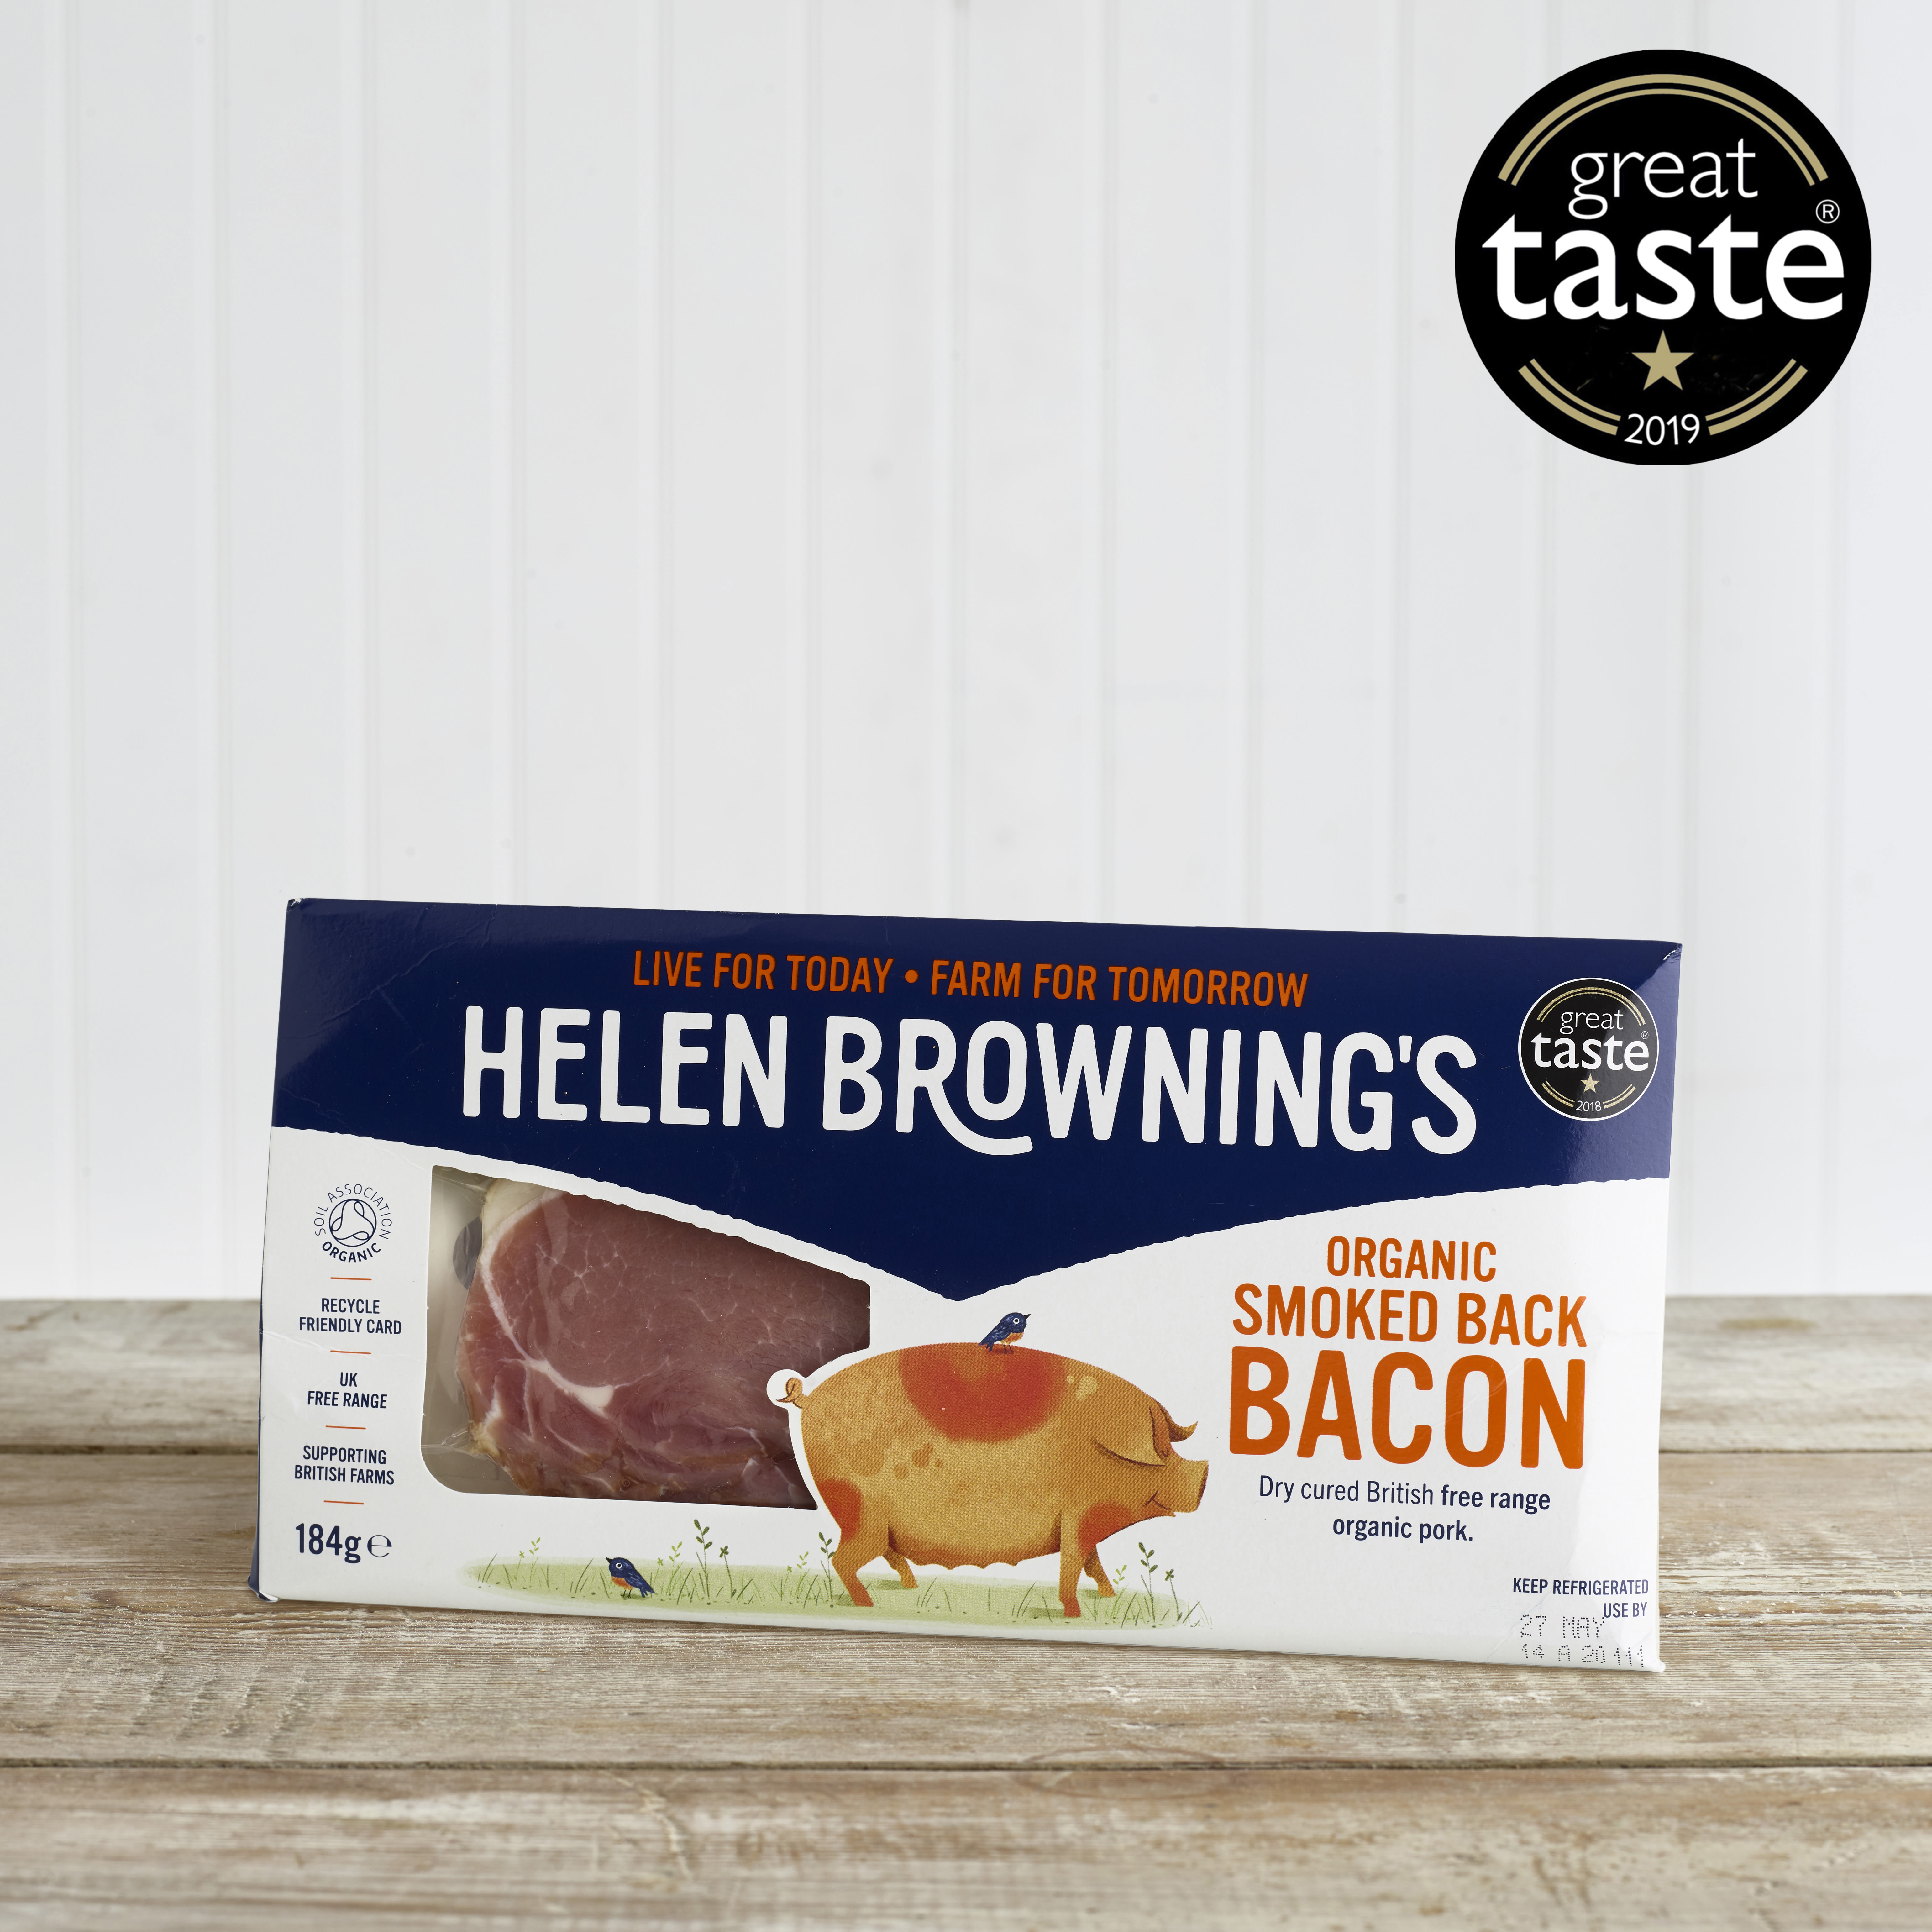 Helen Browning's Organic Smoked Back Bacon, 184g